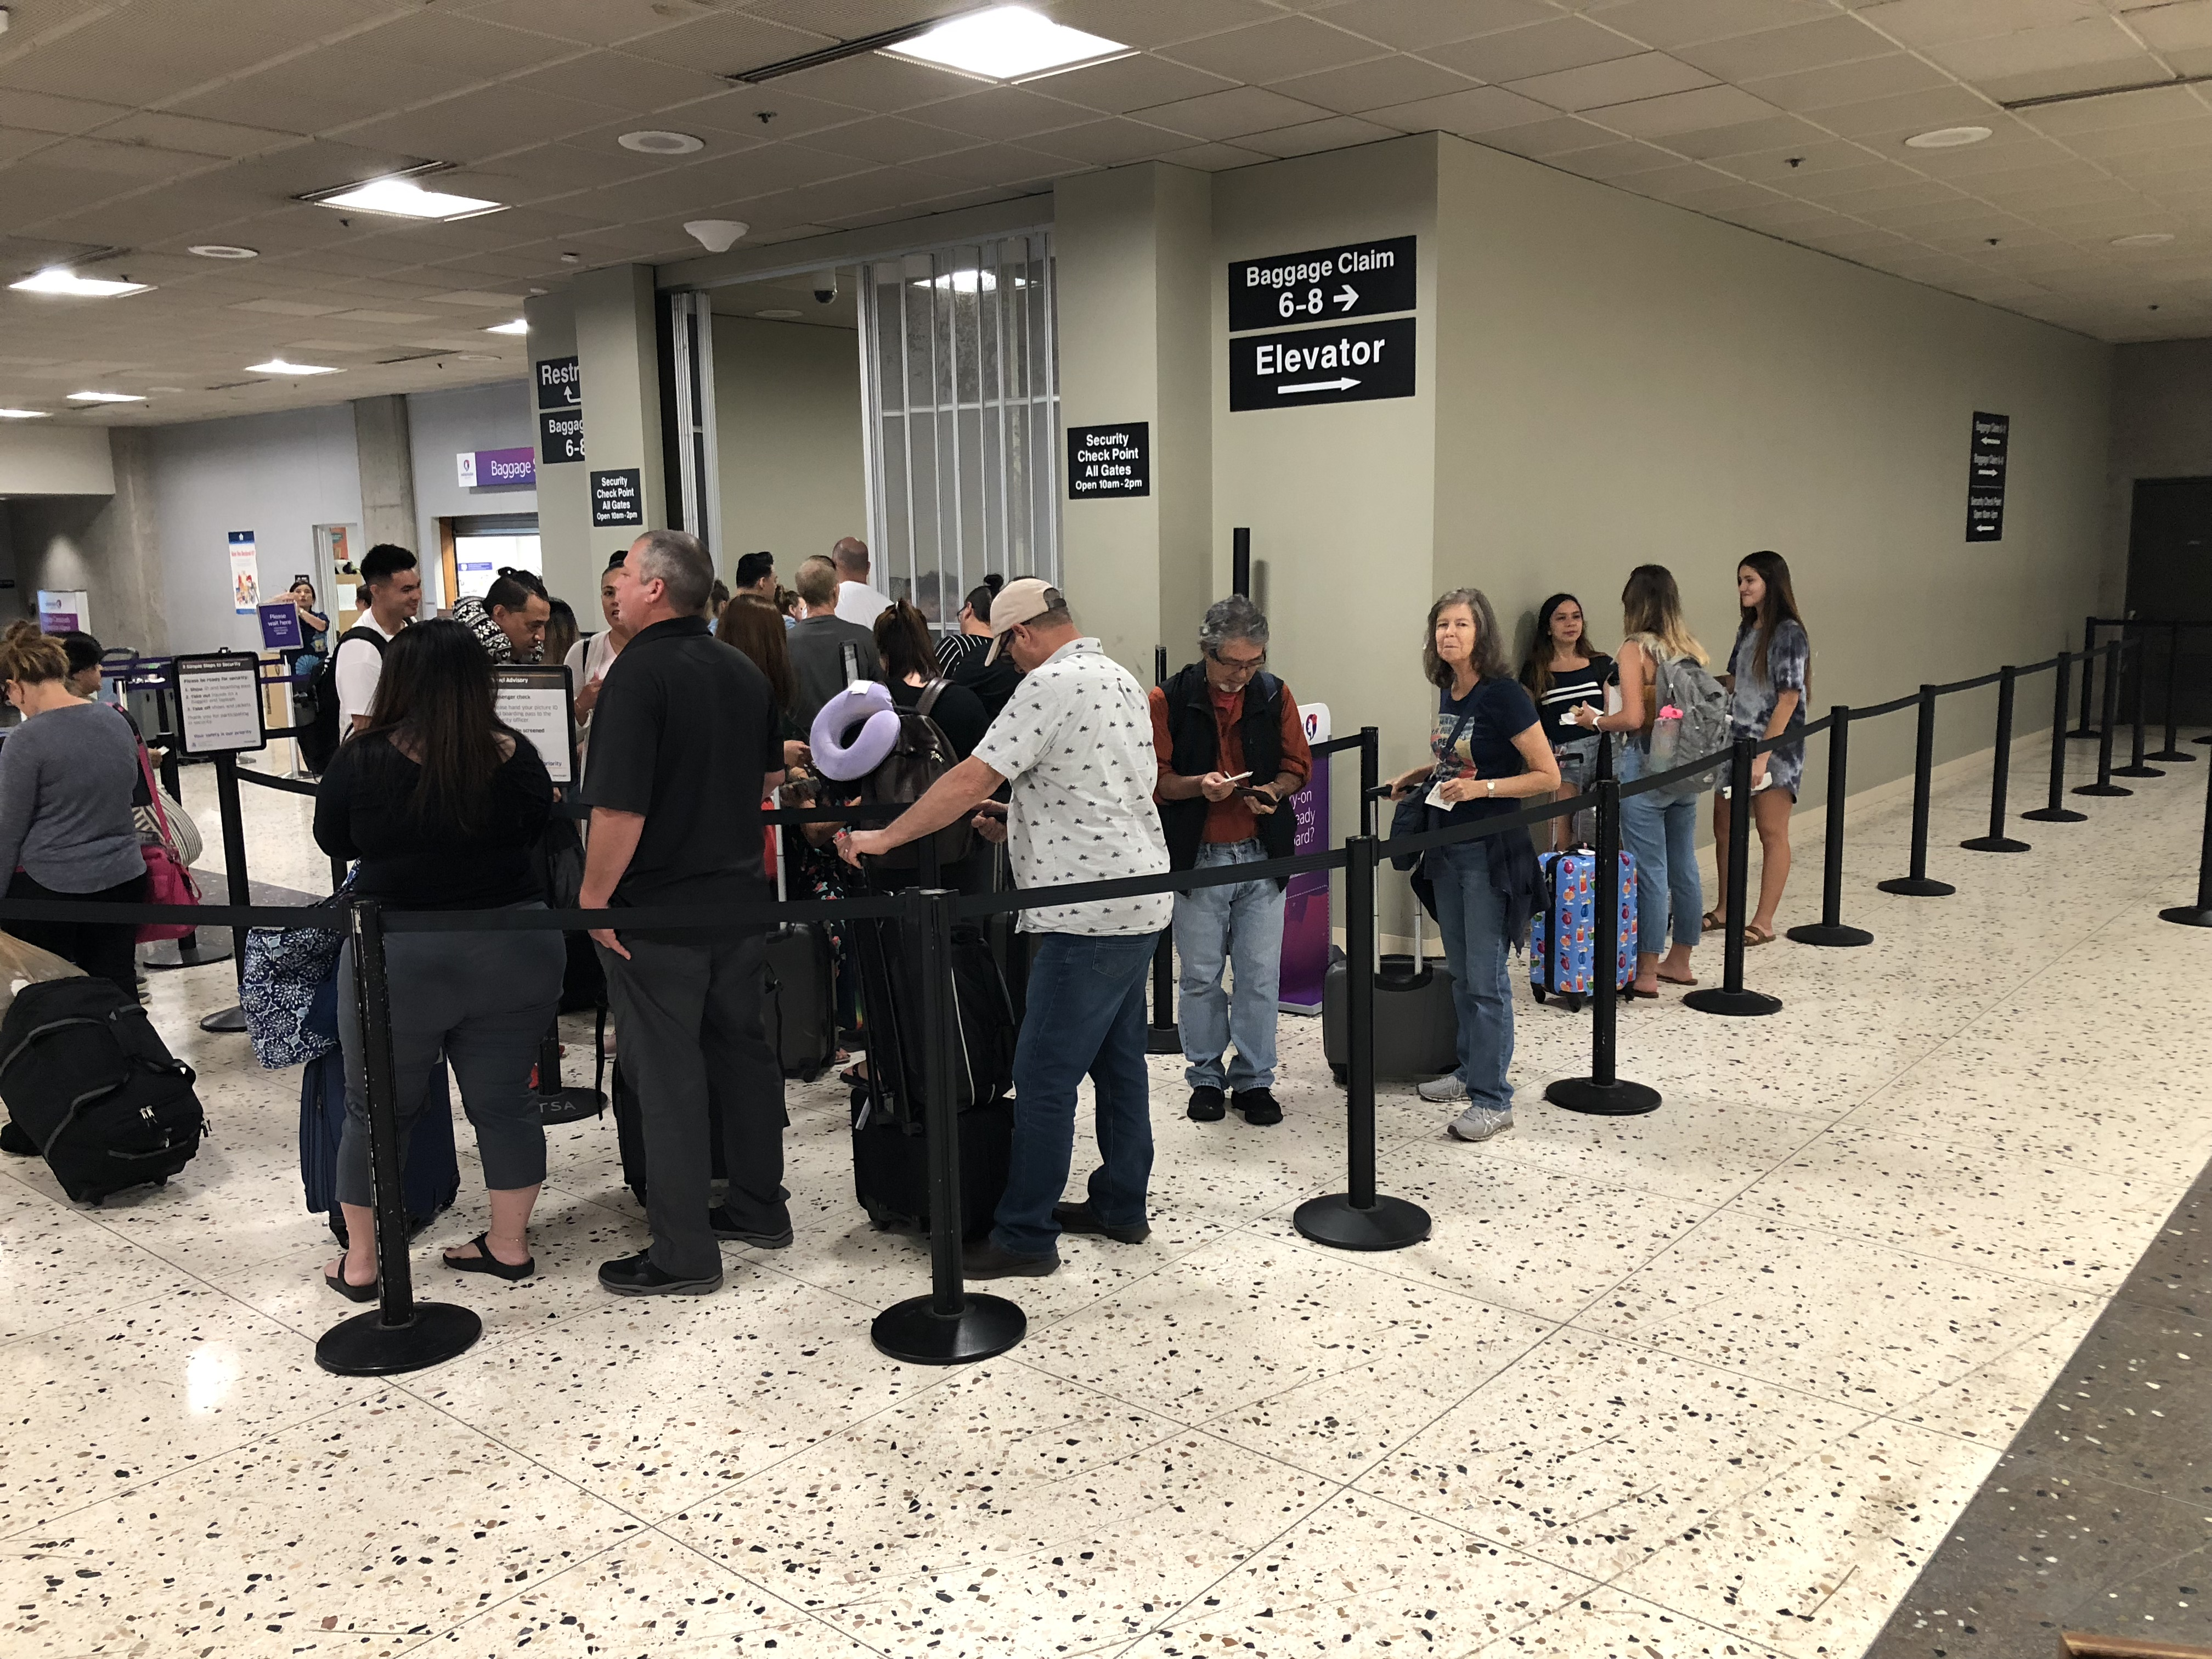 DOT: Airports Will be Busy this Holiday Season, Get Dropped Off